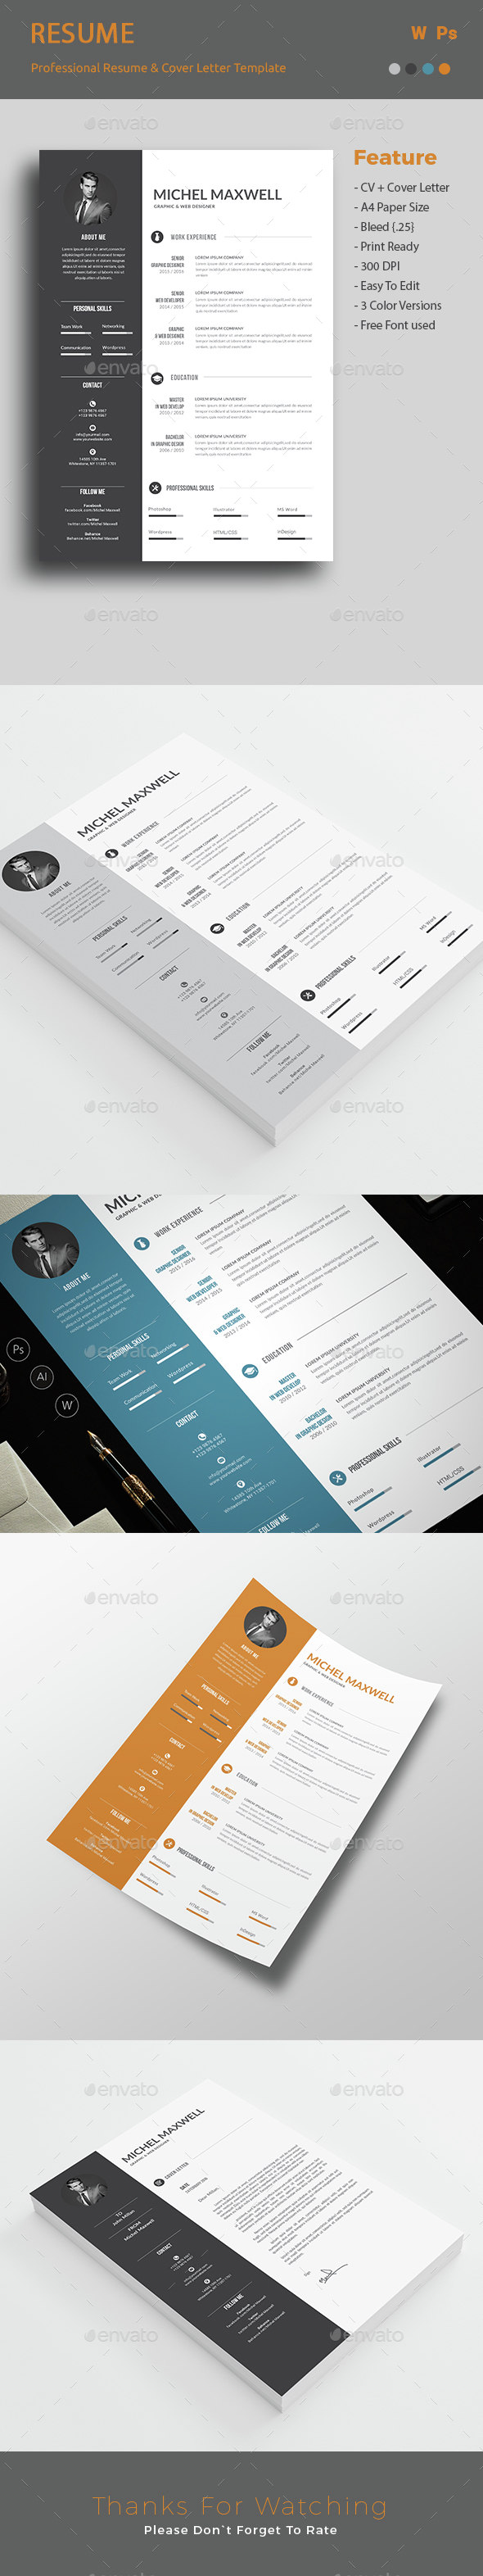 Resume Resume Cv Resume Layout And Resume Ideas